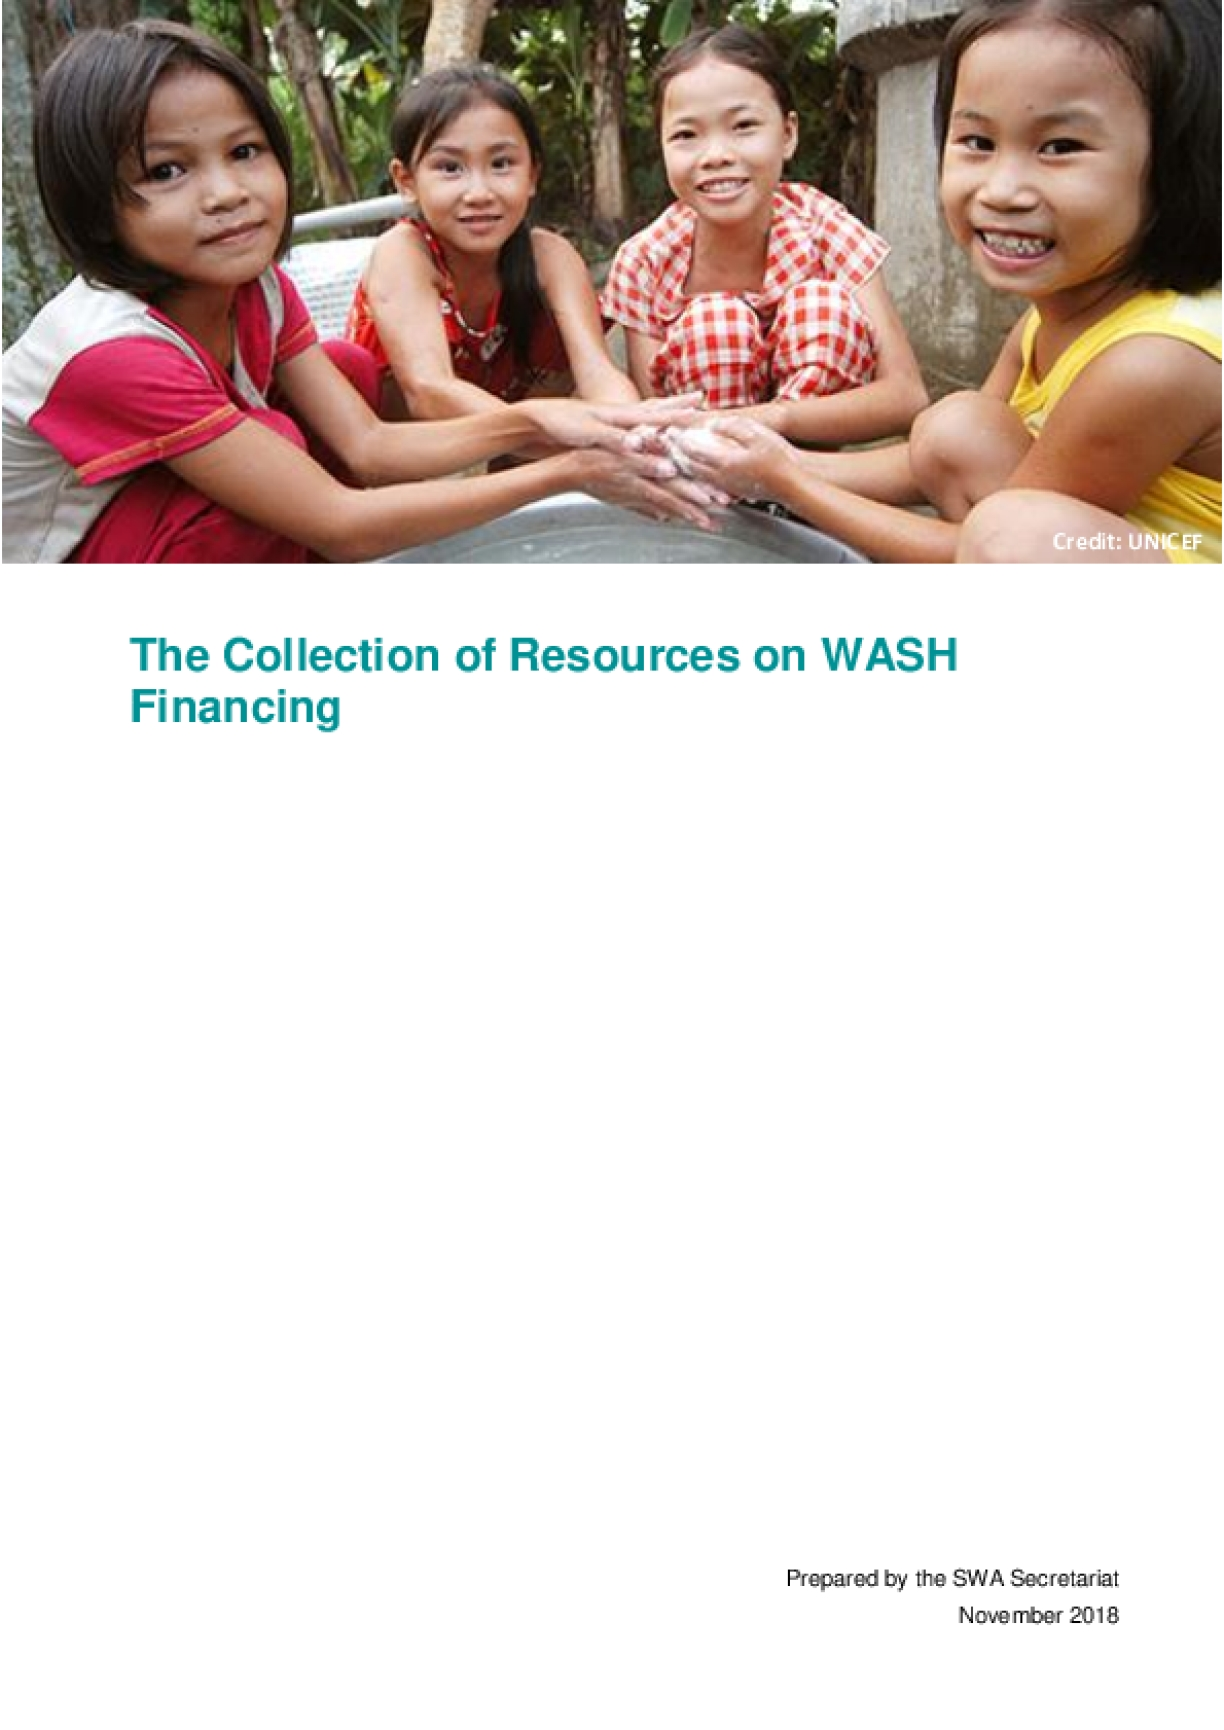 The Collection of Resources on WASH Financing